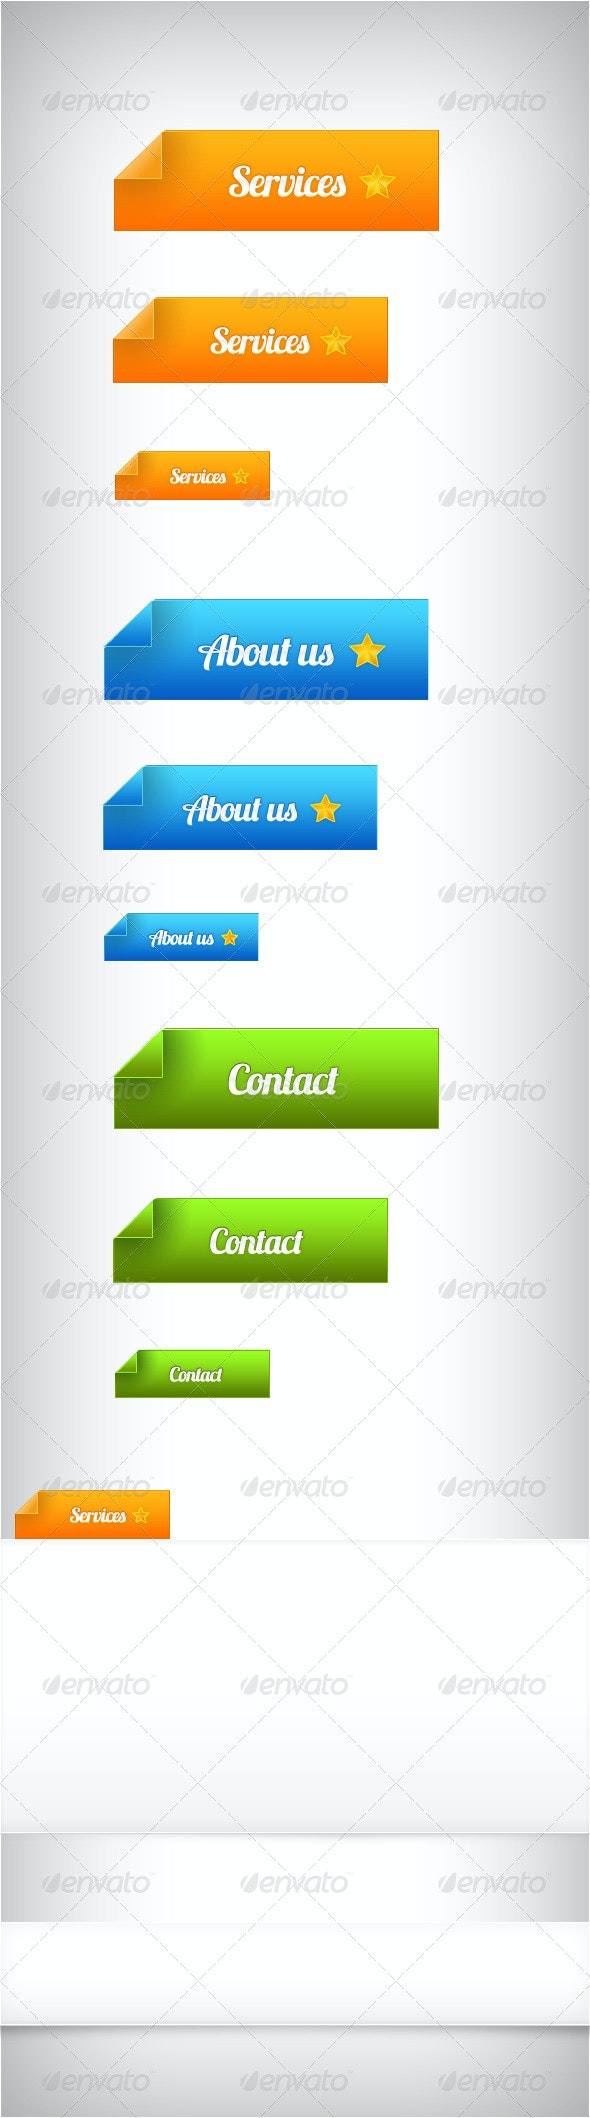 Page Corner Buttons Plus Two Borders - Buttons Web Elements